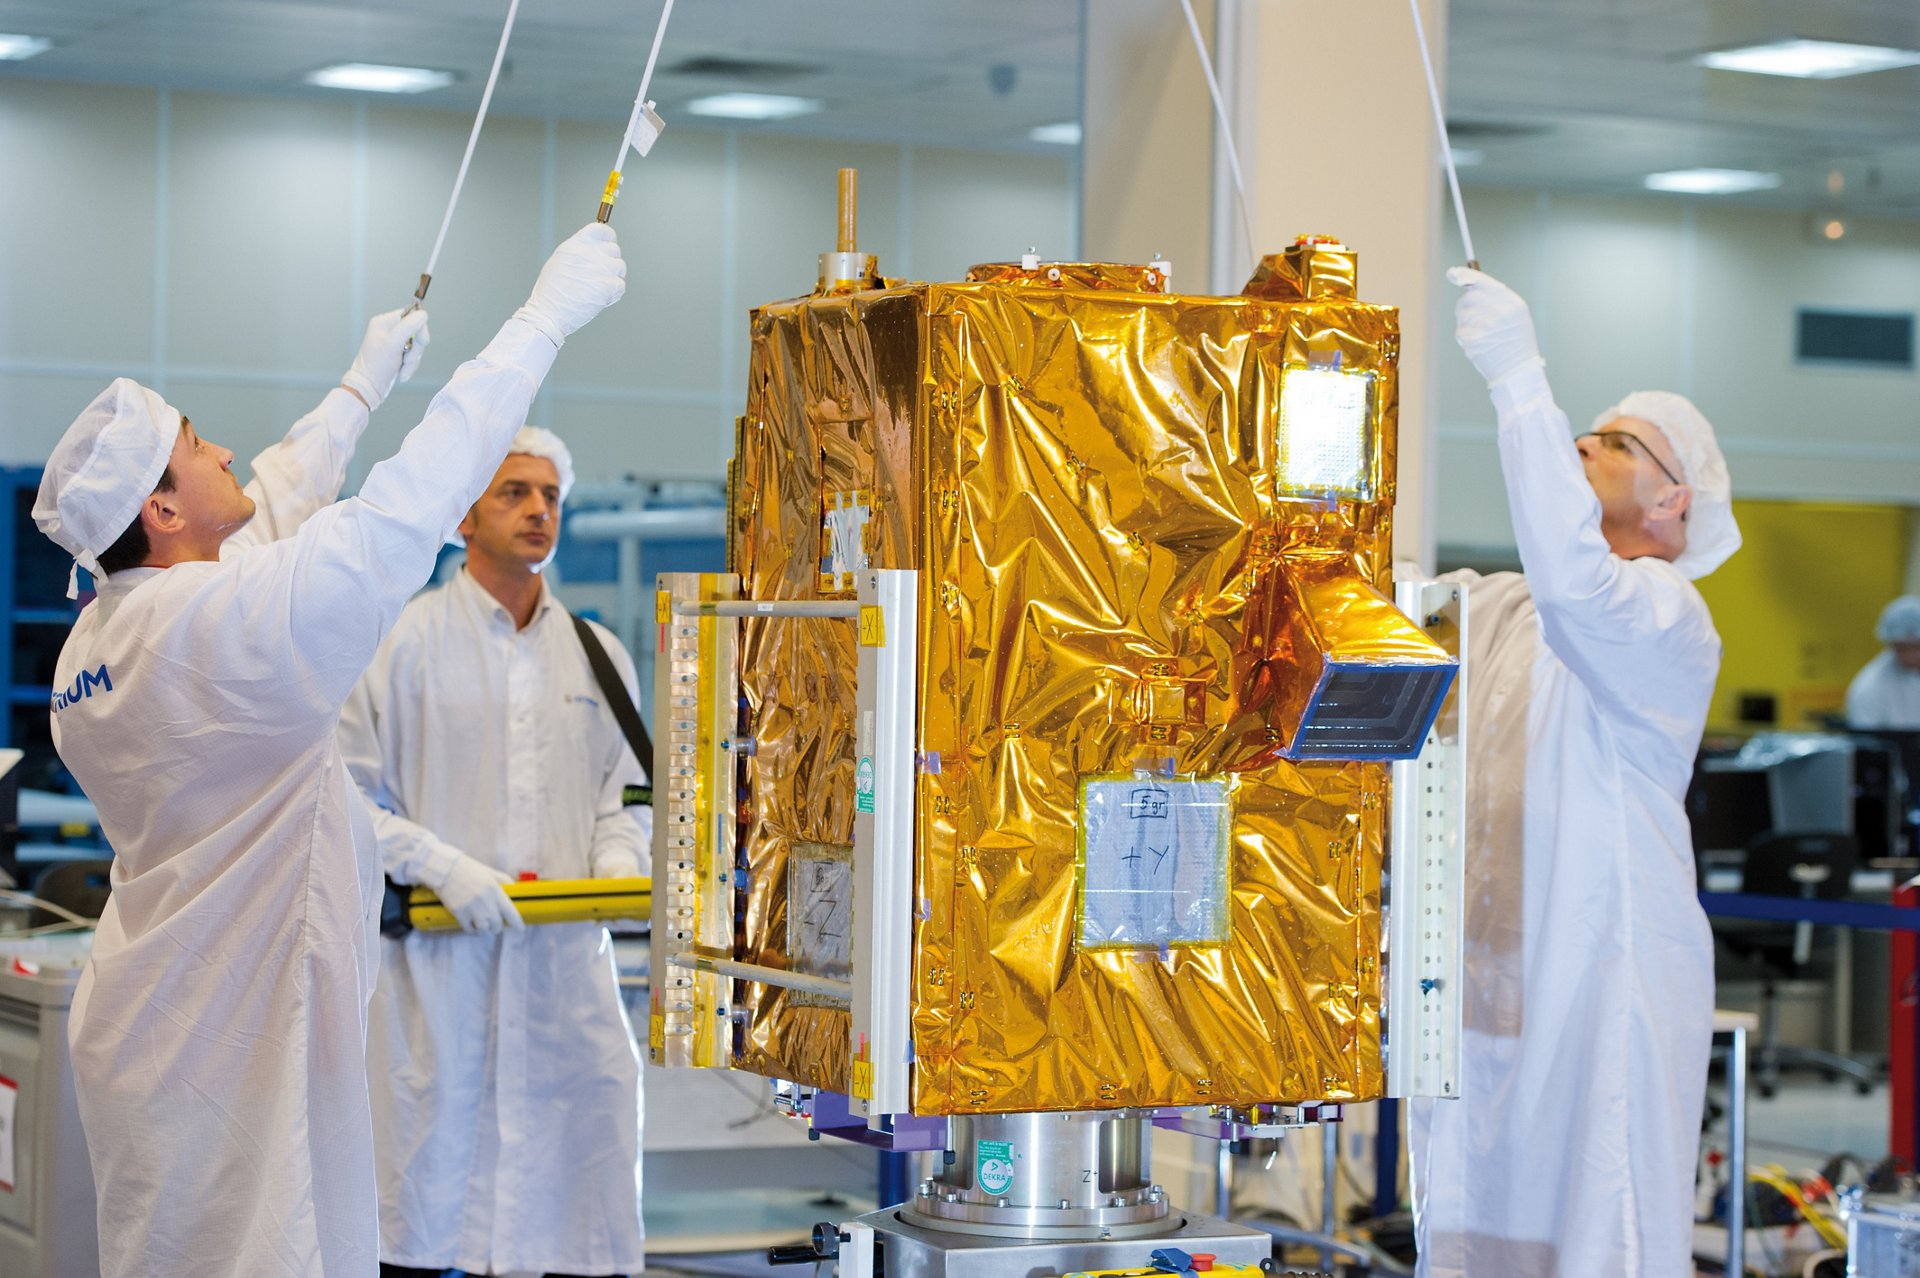 Airbus engineers ready the VNREDSat-1 Earth observation satellite in a clean room setting.